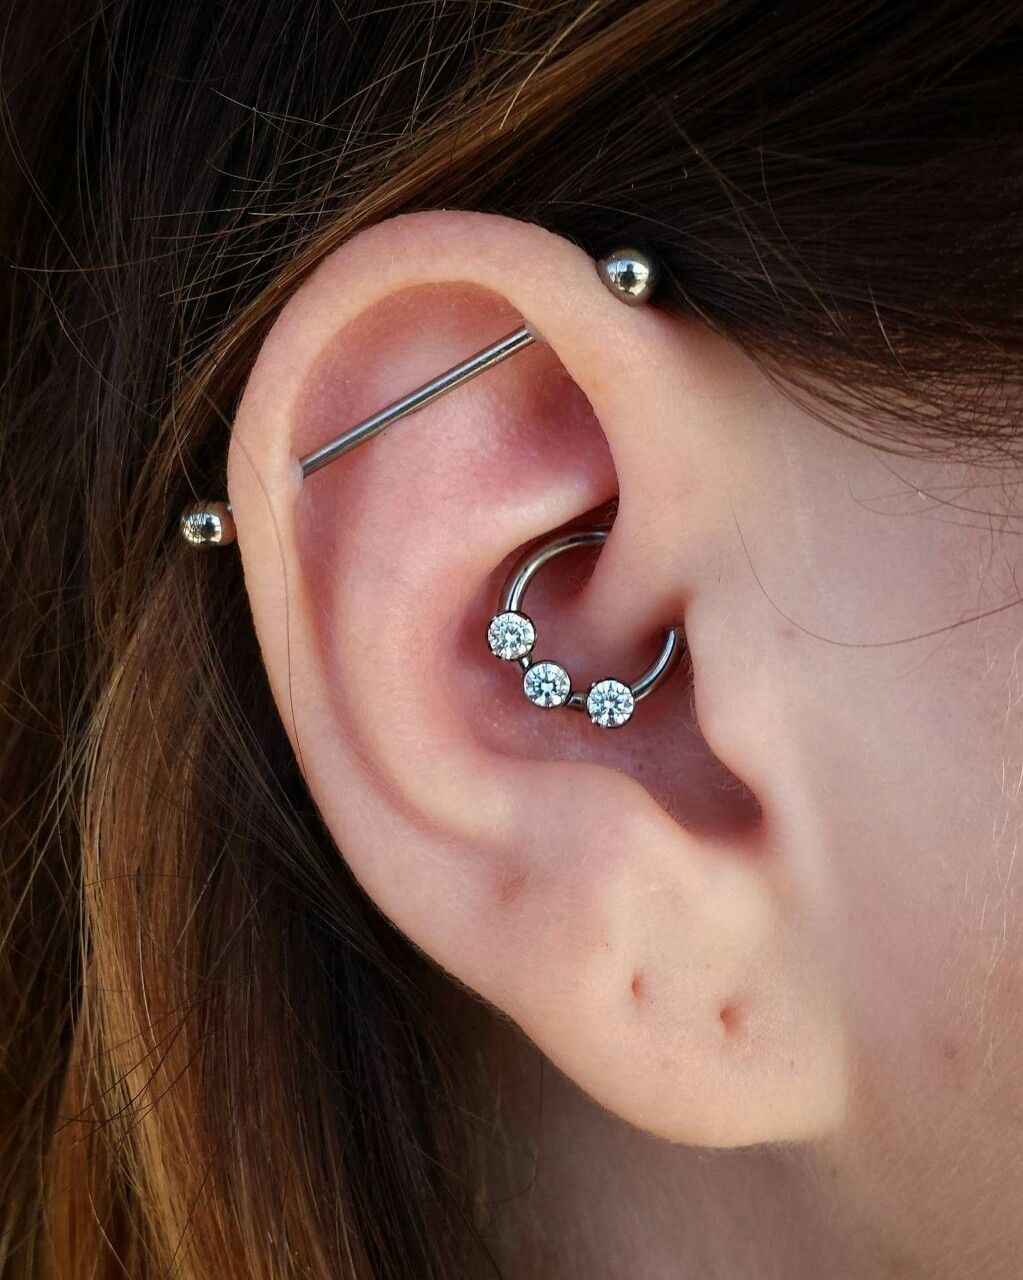 The Ultimate Guide On Industrial Piercings With Amazing Photos